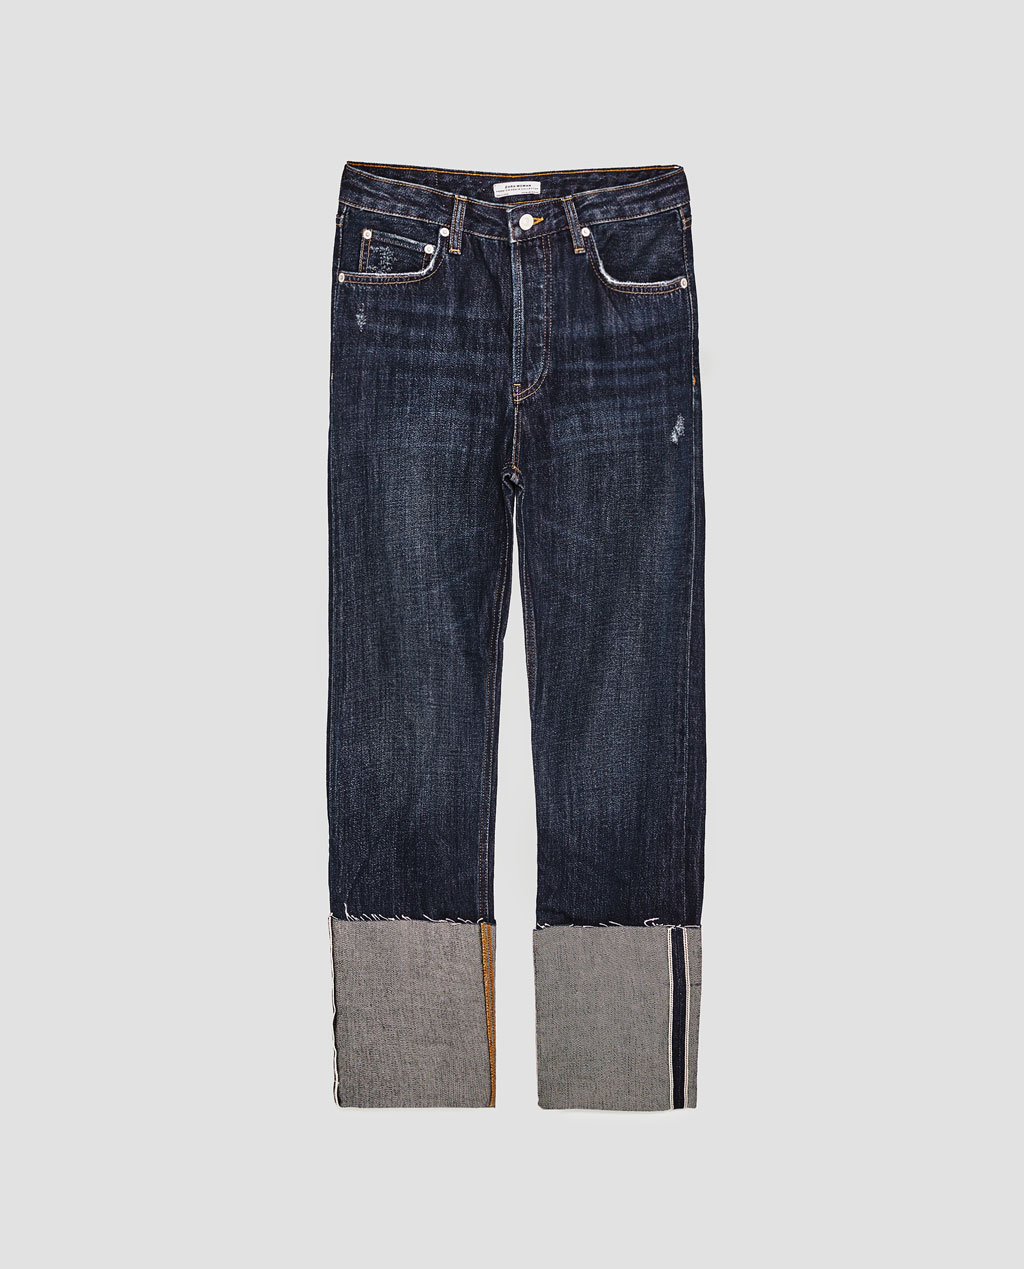 THE VINTAGE STRAIGHT JEANS IN SAMURAI BLUE